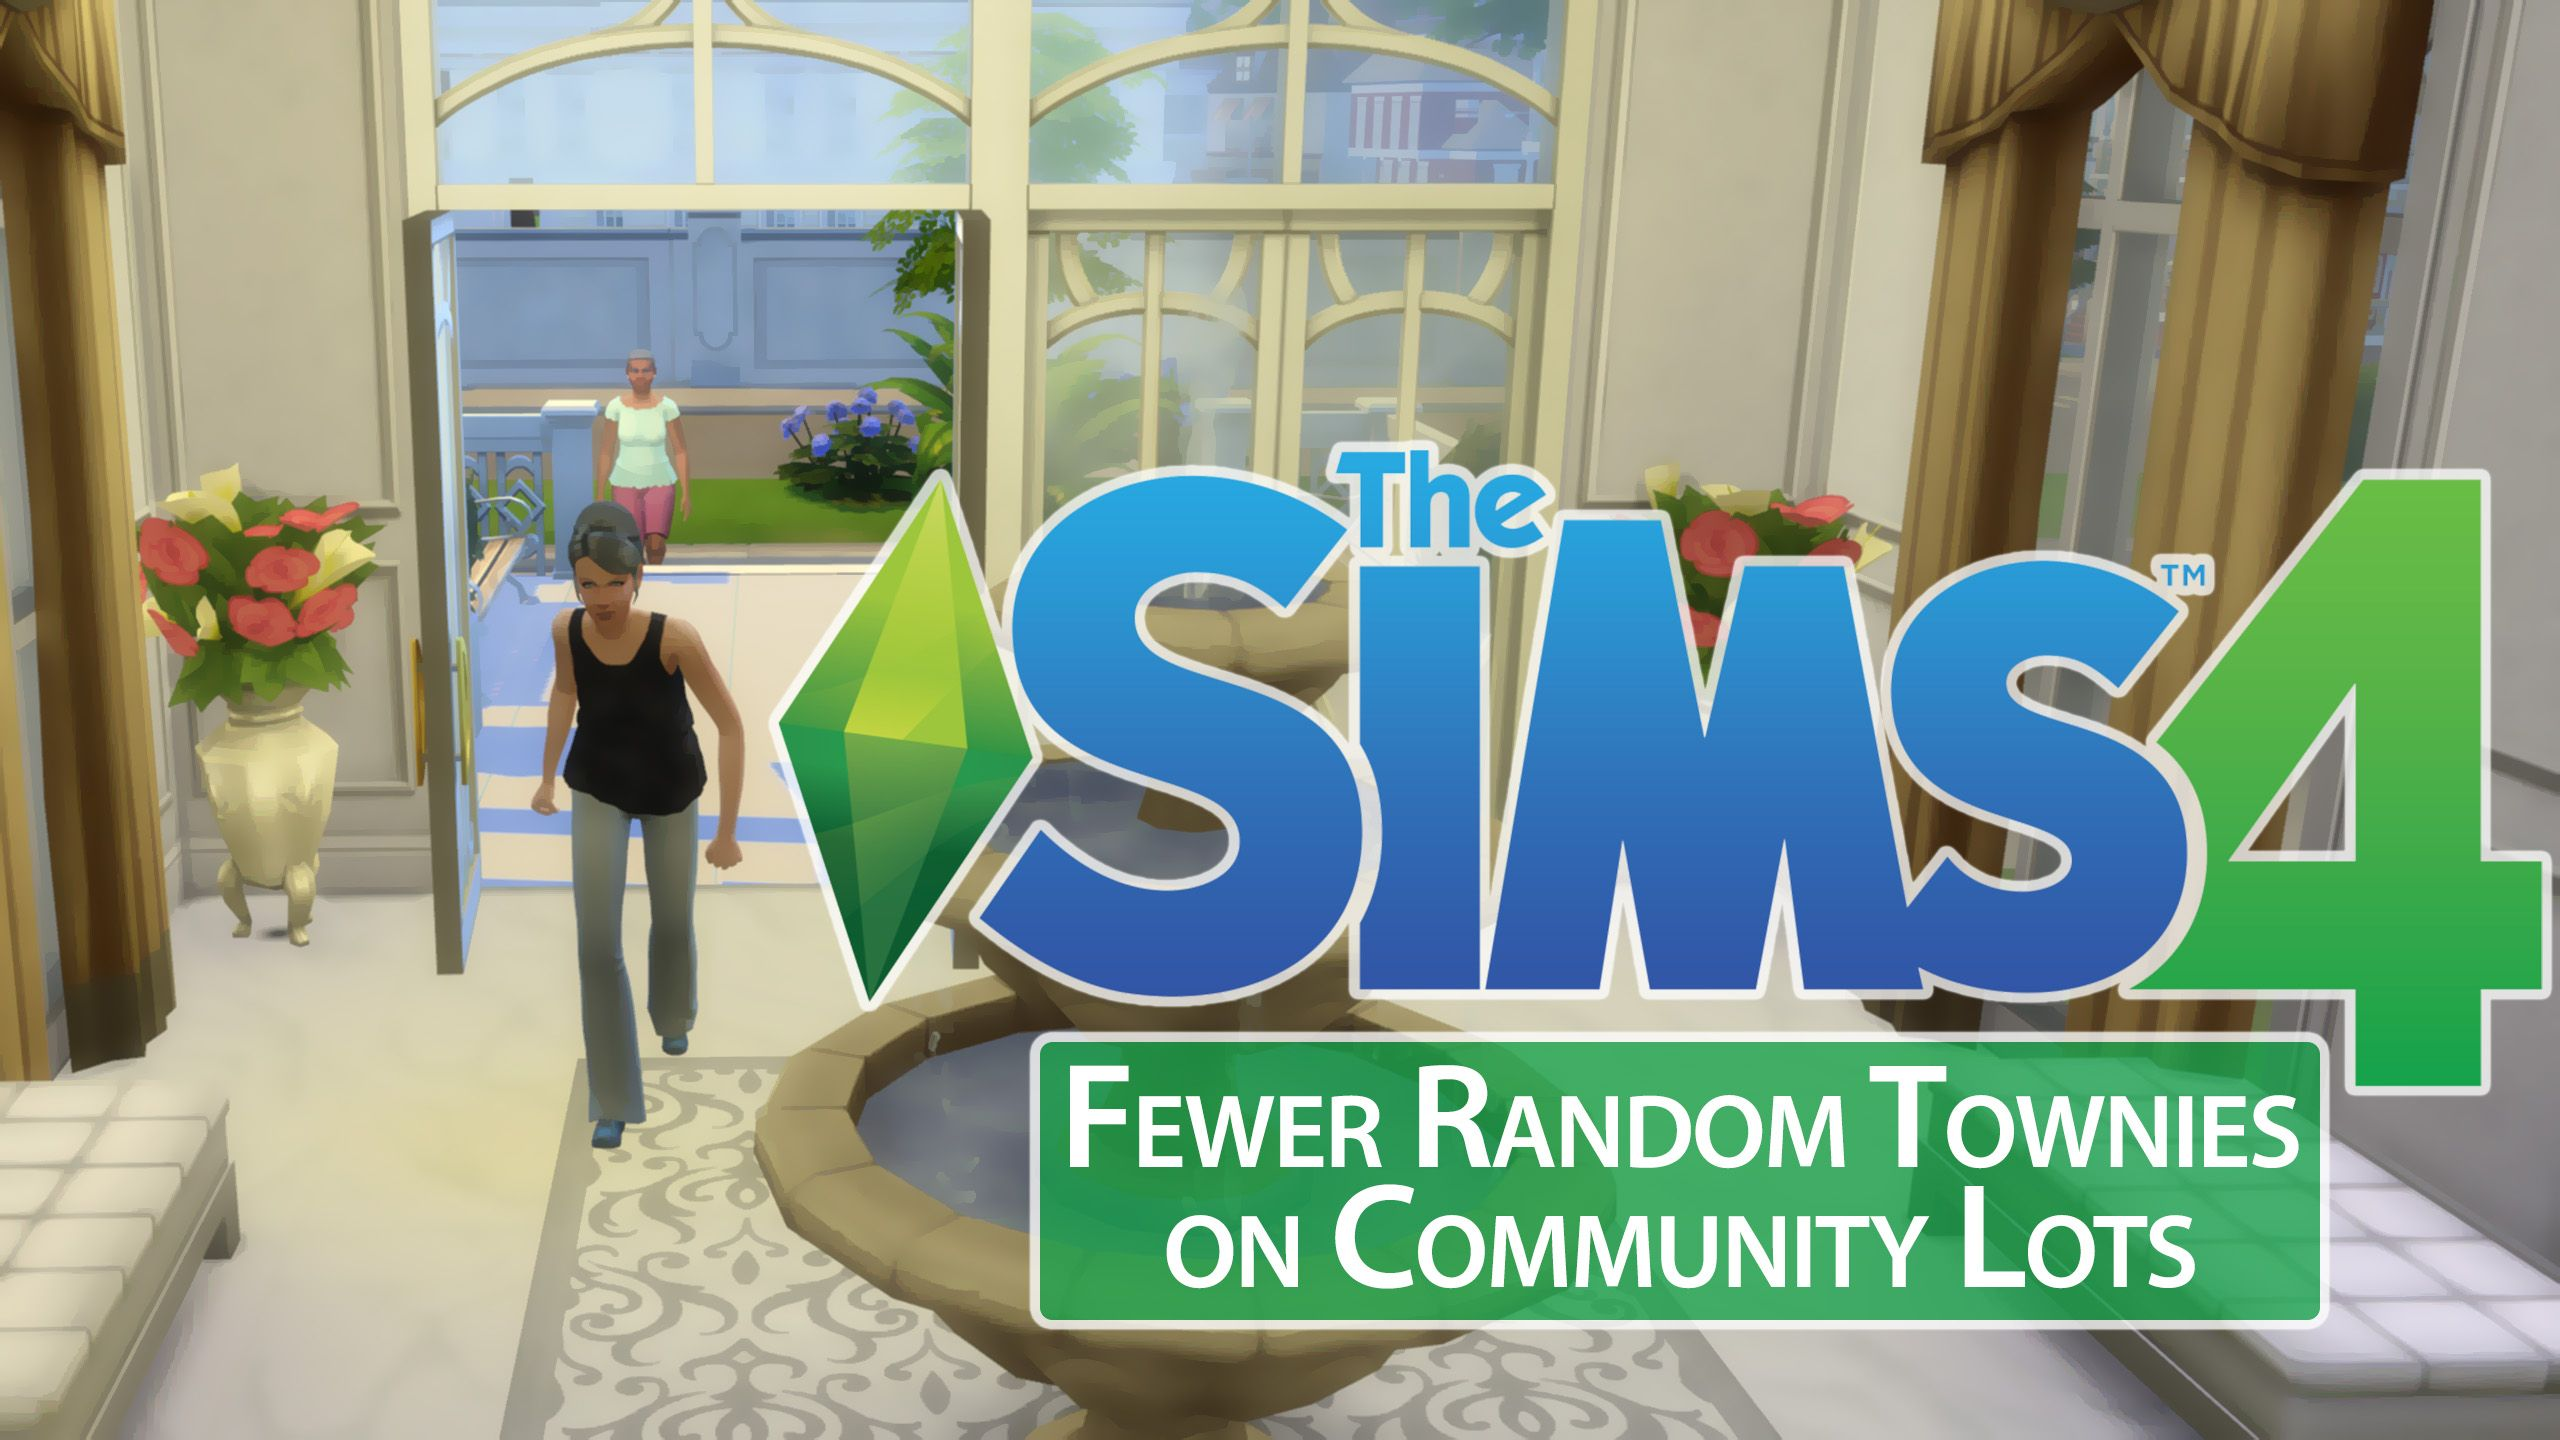 This mod makes random townies less likely to appear on community